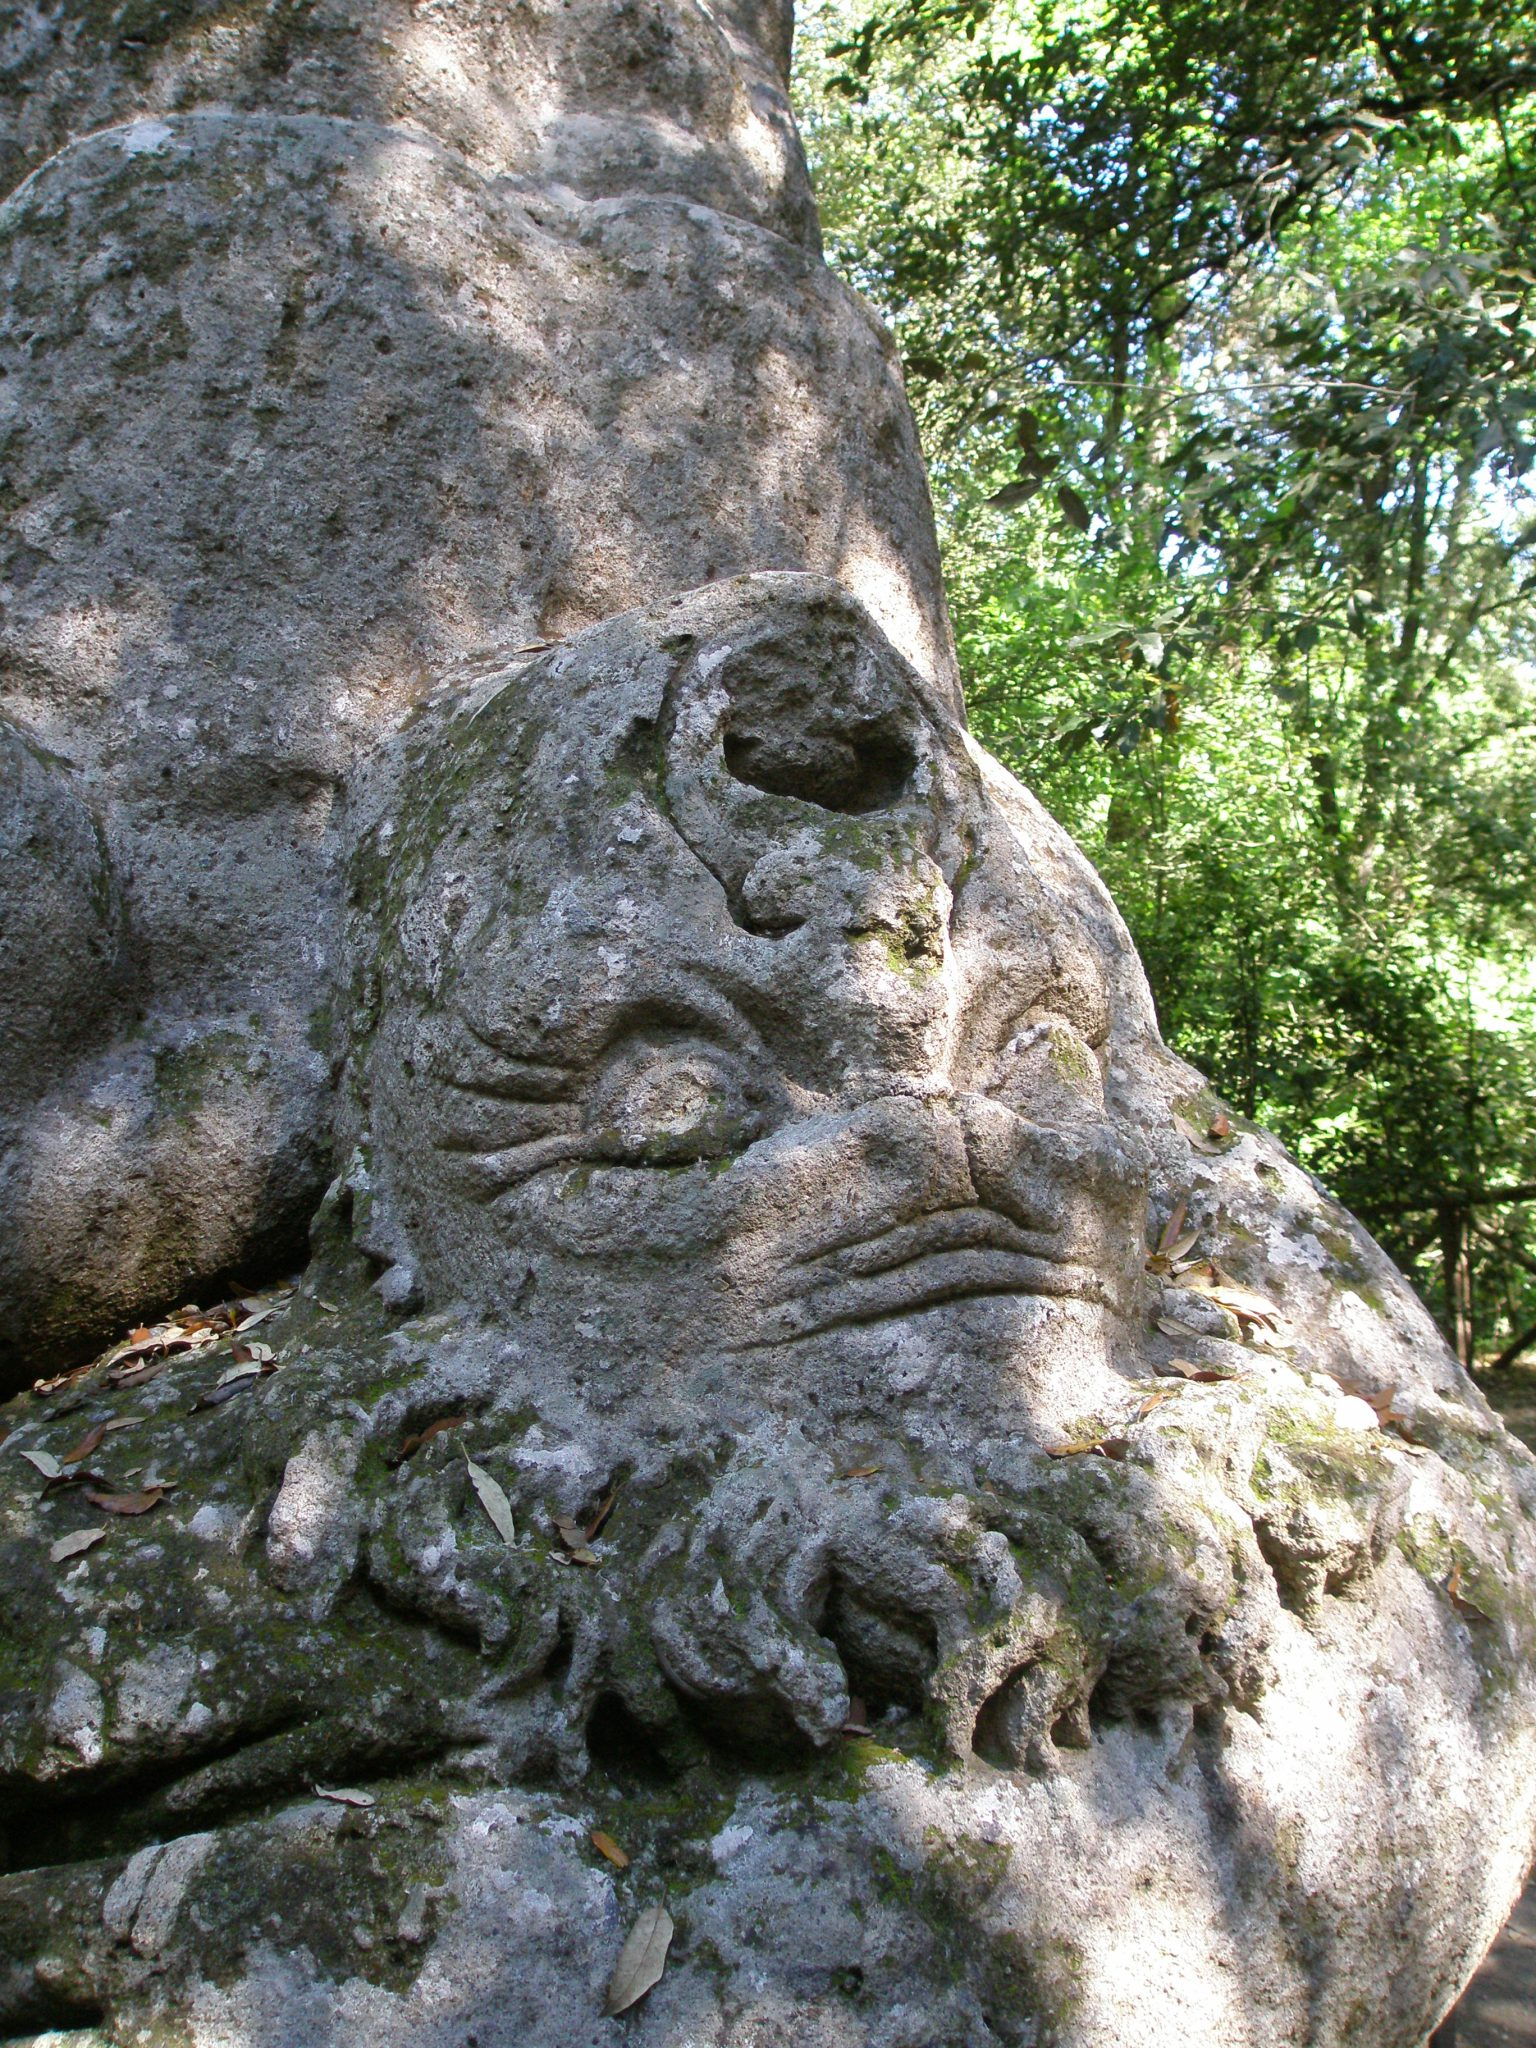 Detail of the face of the Robber Cacus